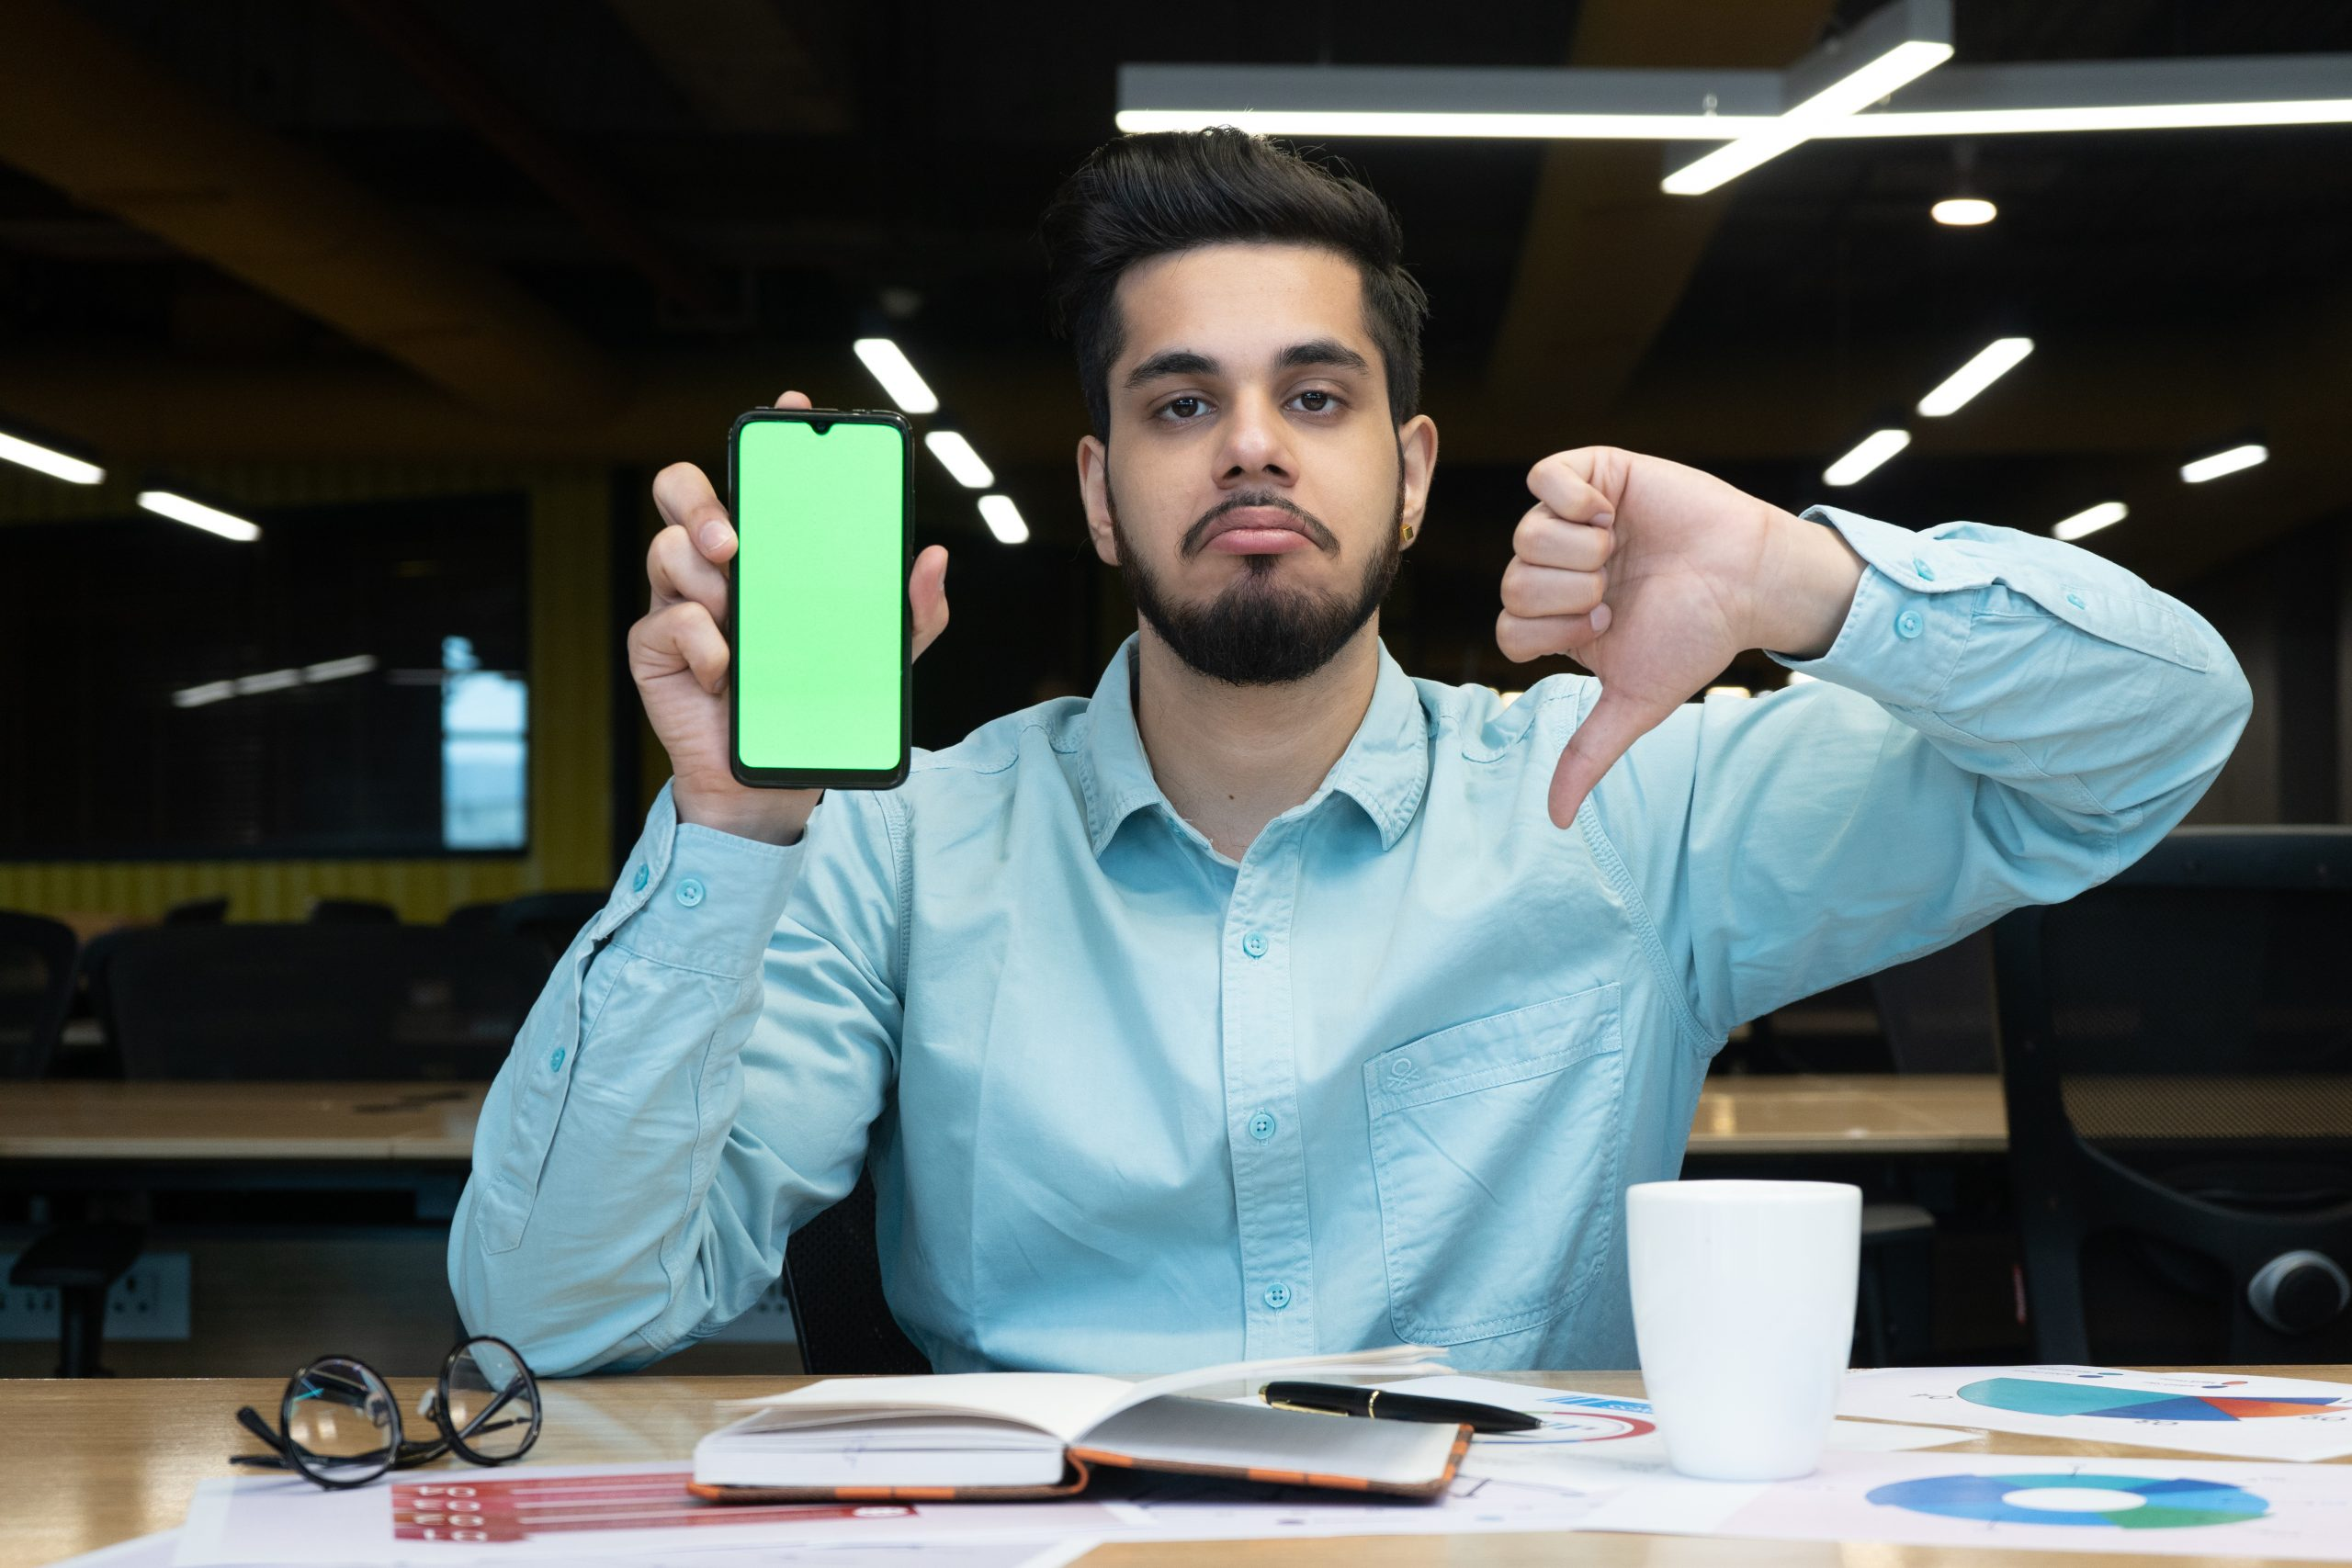 Man showing thumbs down with mobile screen